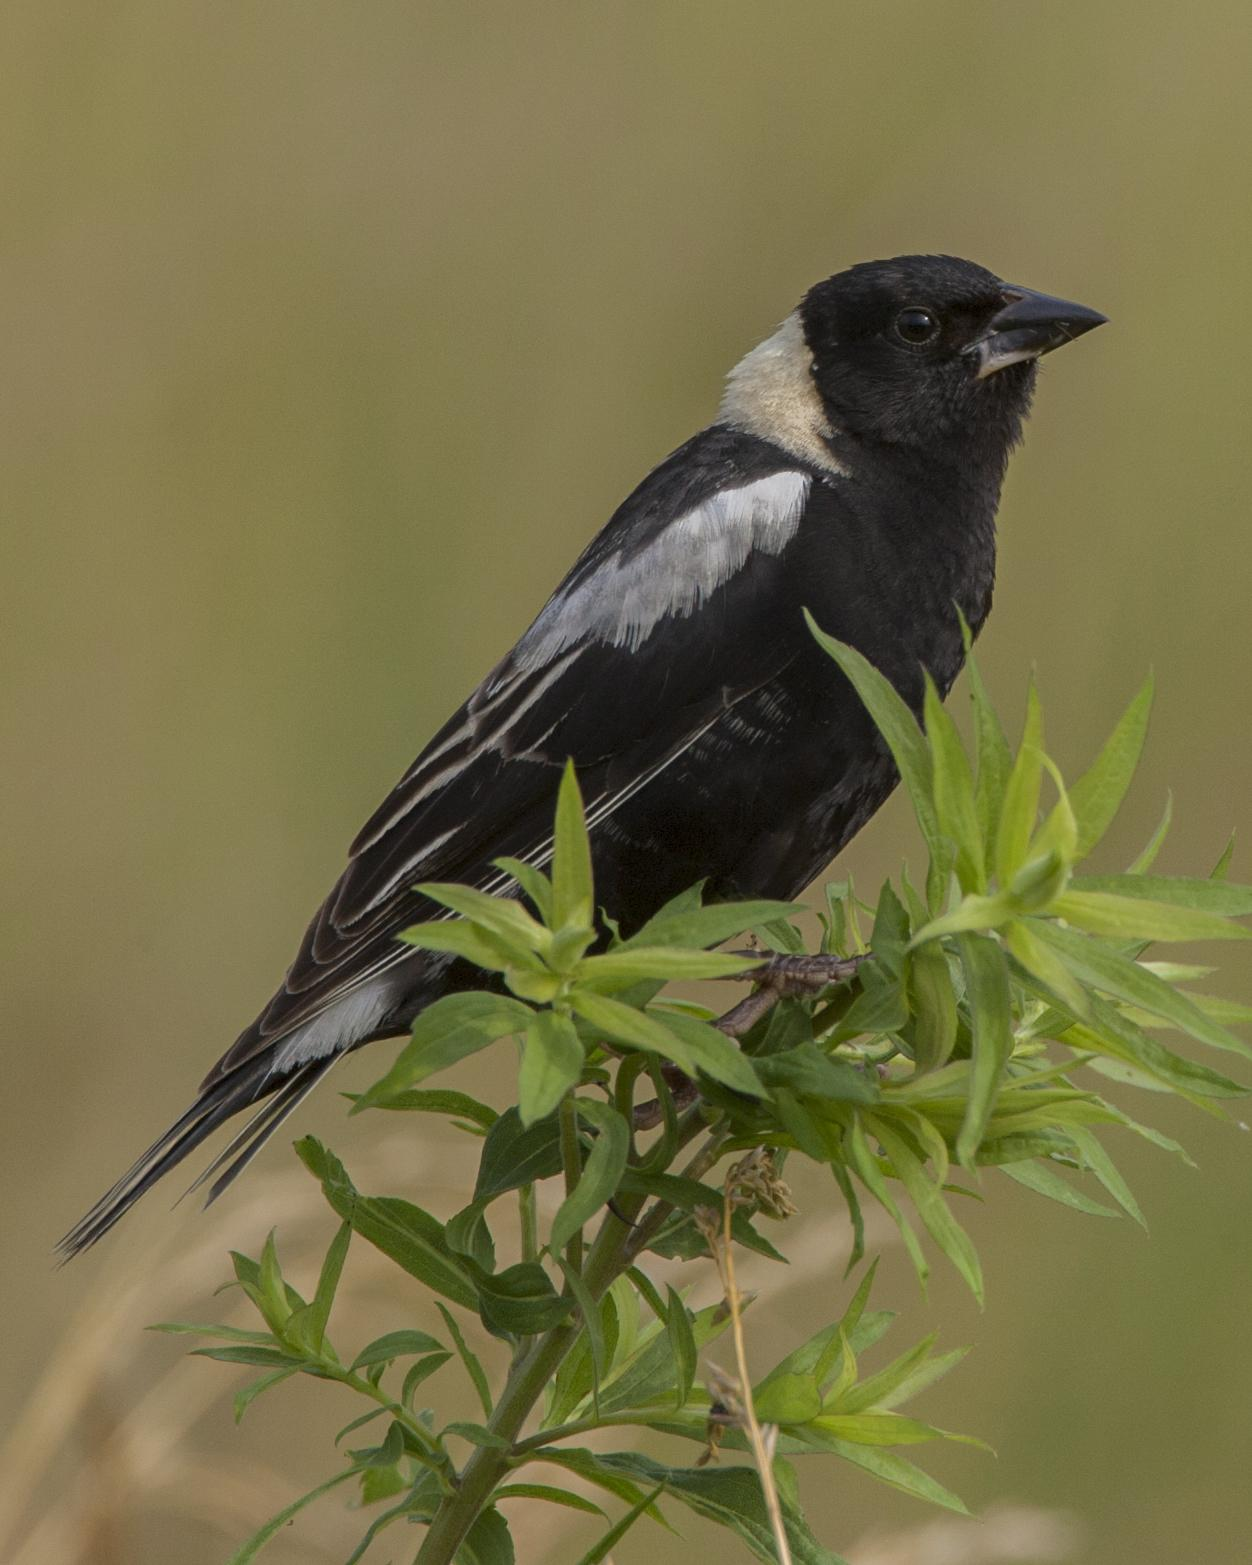 Bobolink Photo by Jeff Moore